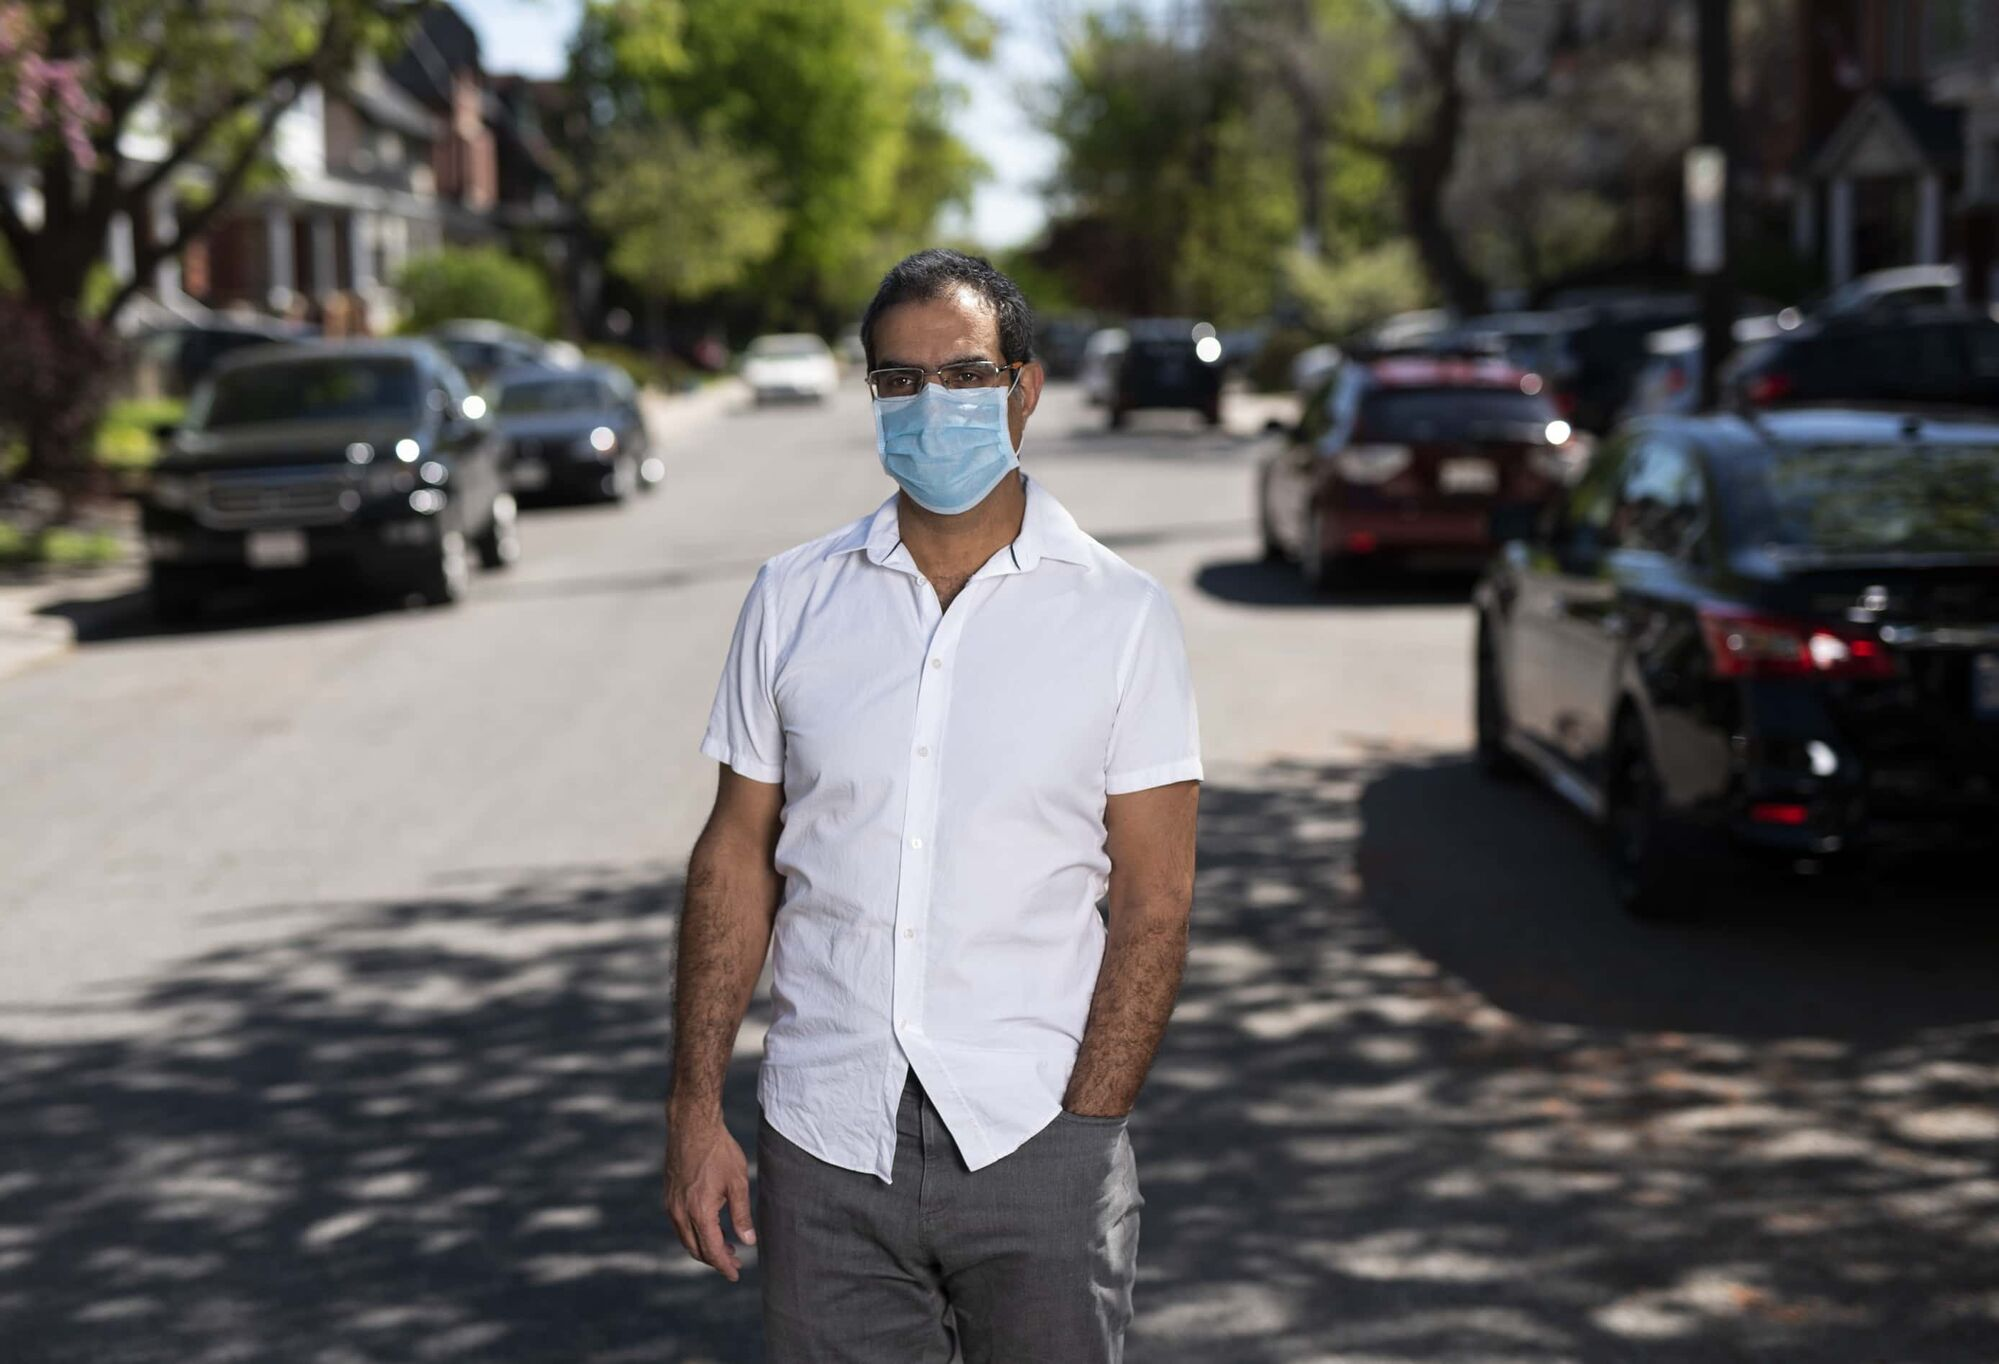 Amir Attaran, Professor, Faculty of Law & School of Epidemiology and Public Health at the University of Ottawa, in Ottawa on May 22, 2020. (Justin Tang for Winnipeg Free Press)